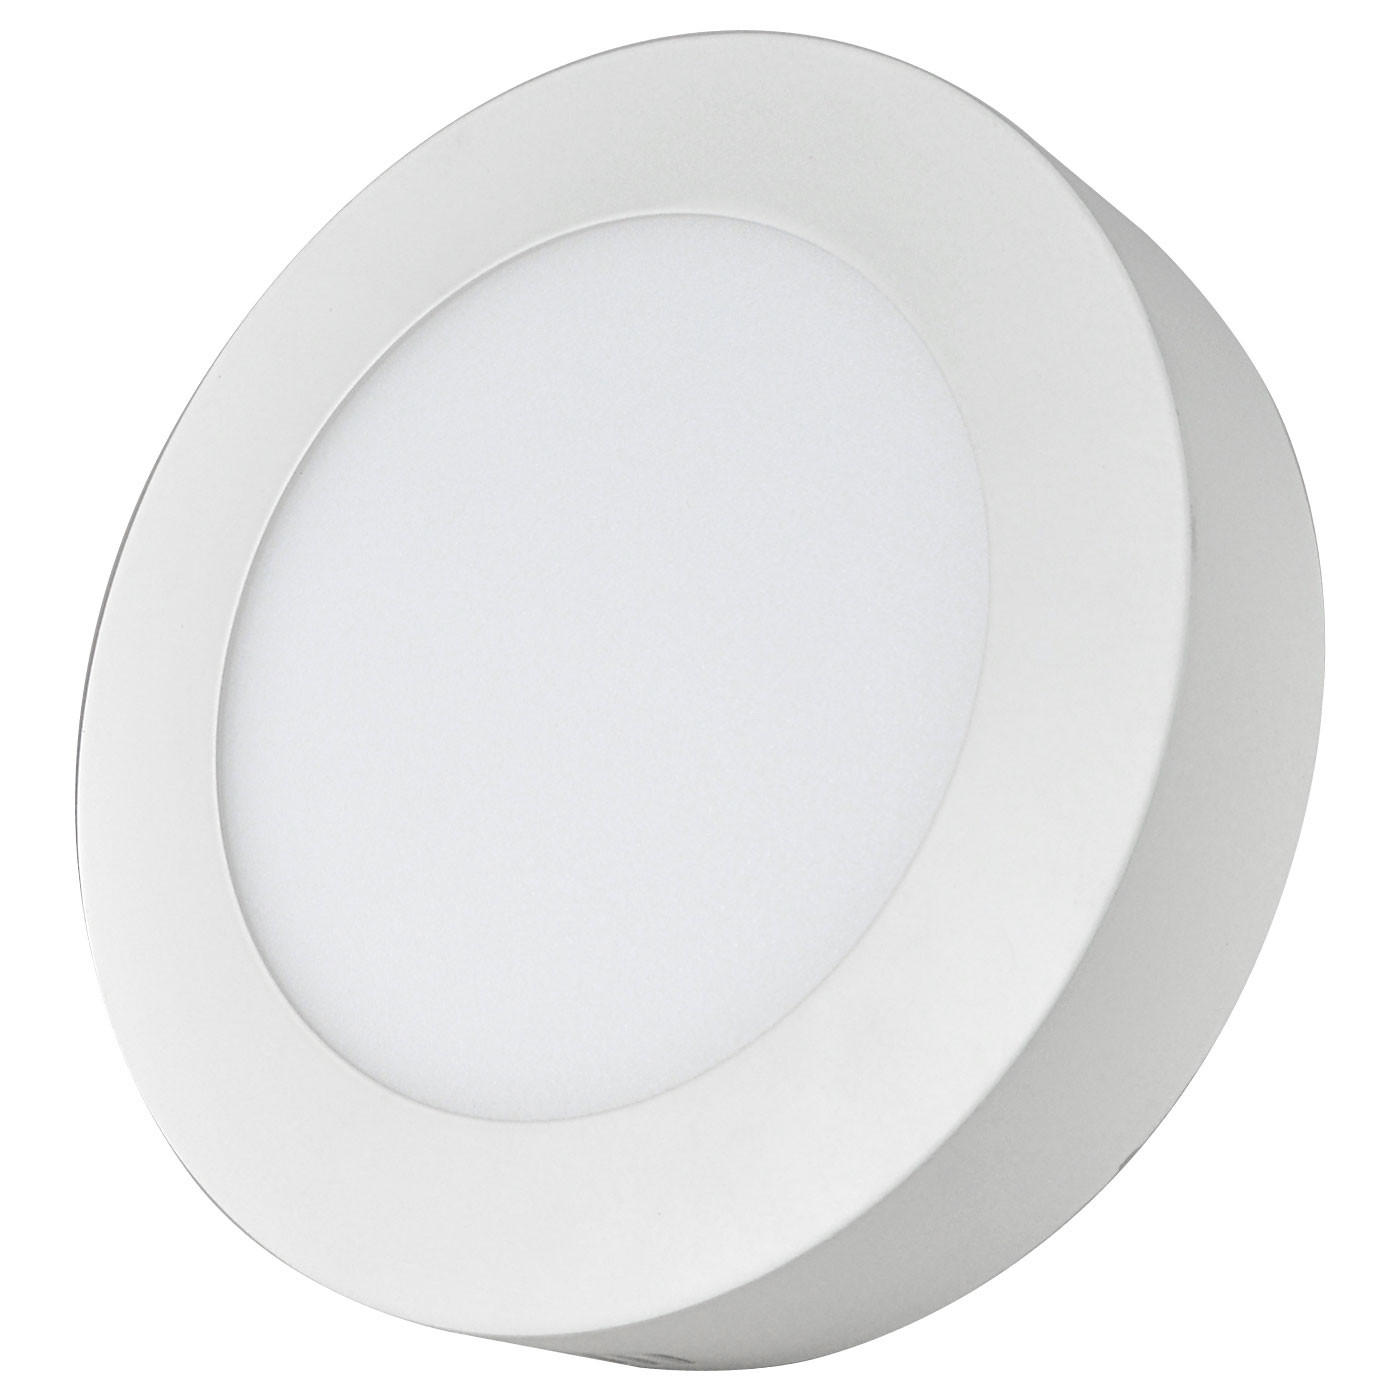 MENGS® 12W Round LED Ceiling Light 60x 2835 SMD LED Recessed Panel Lamp in Warm White Energy-saving Light